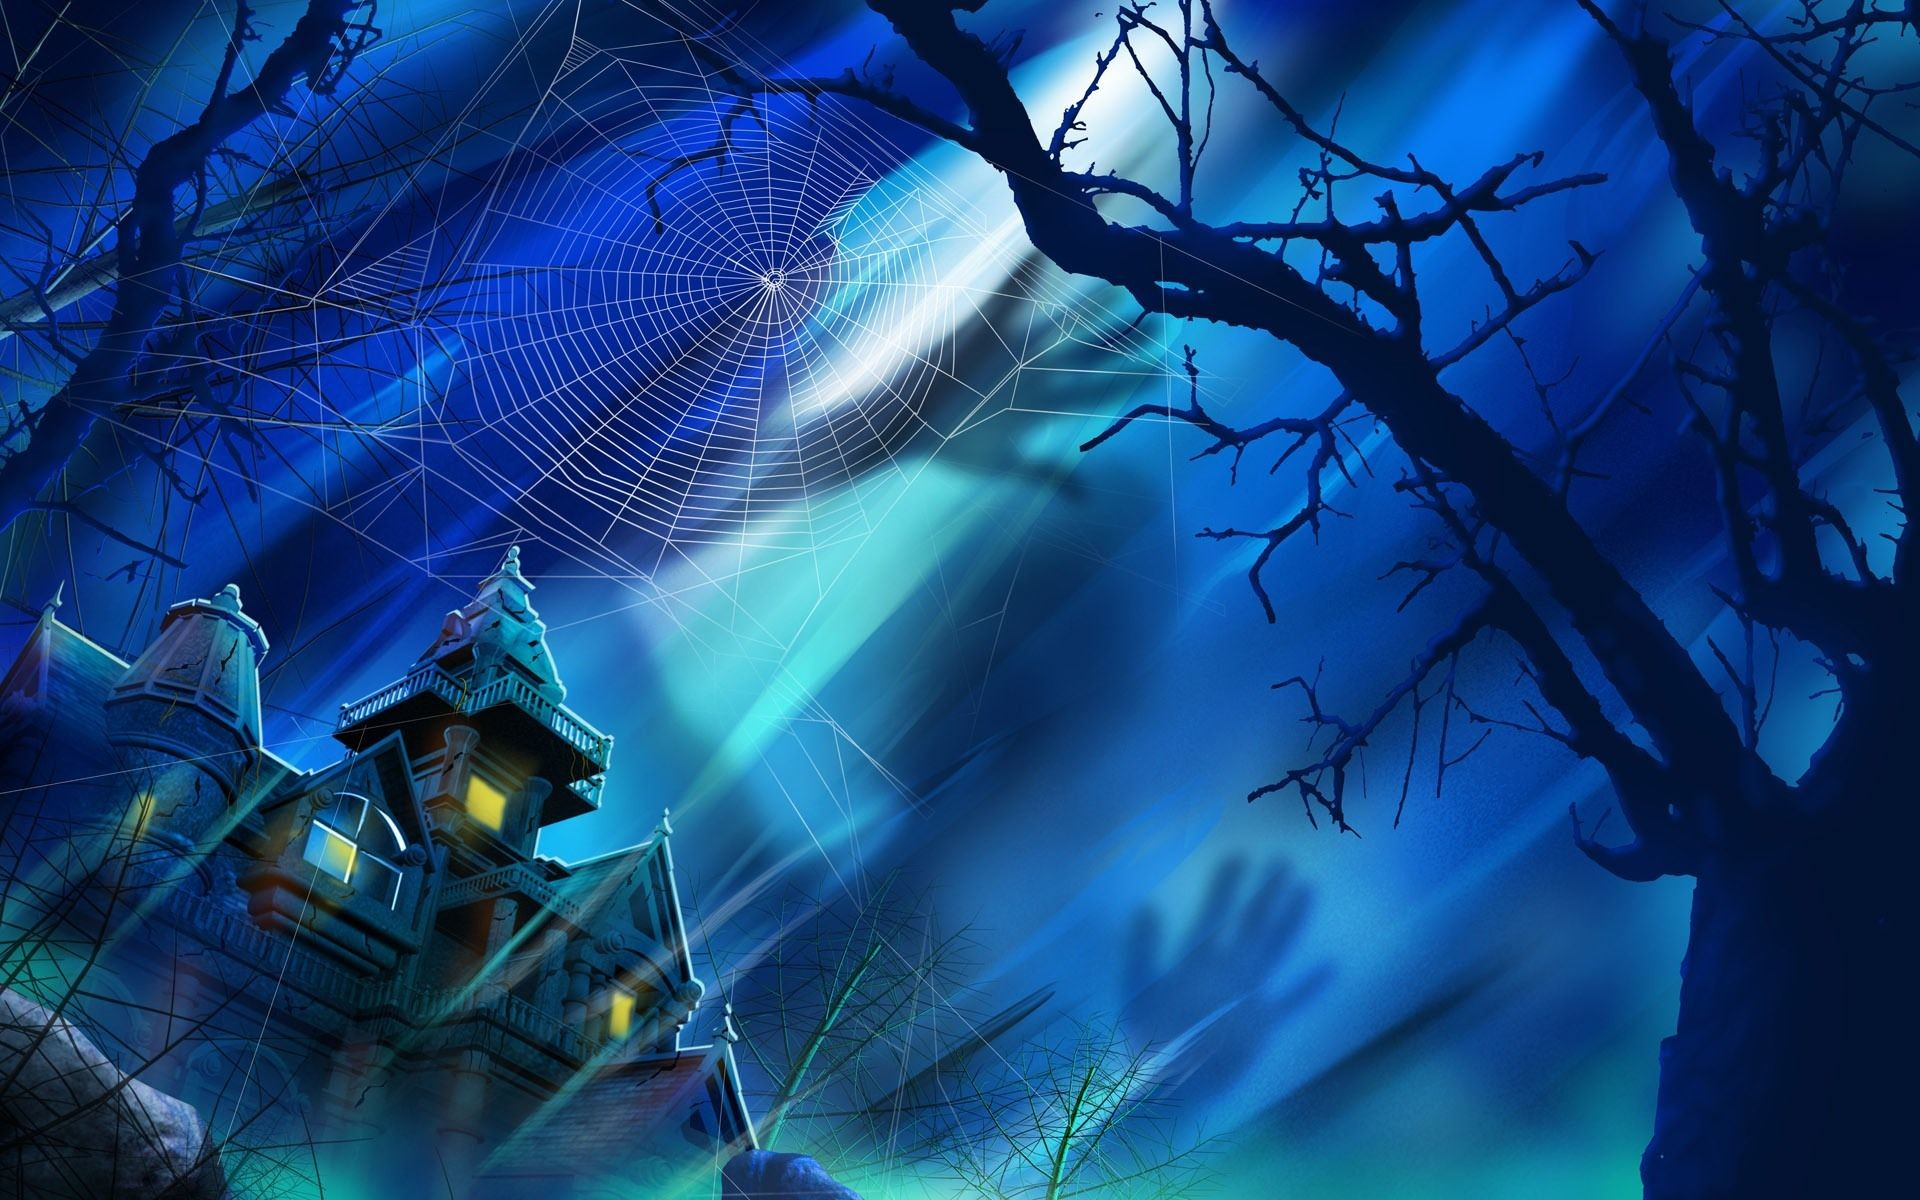 1920x1200 blue house images | Blue Night Haunted House desktop wallpaper